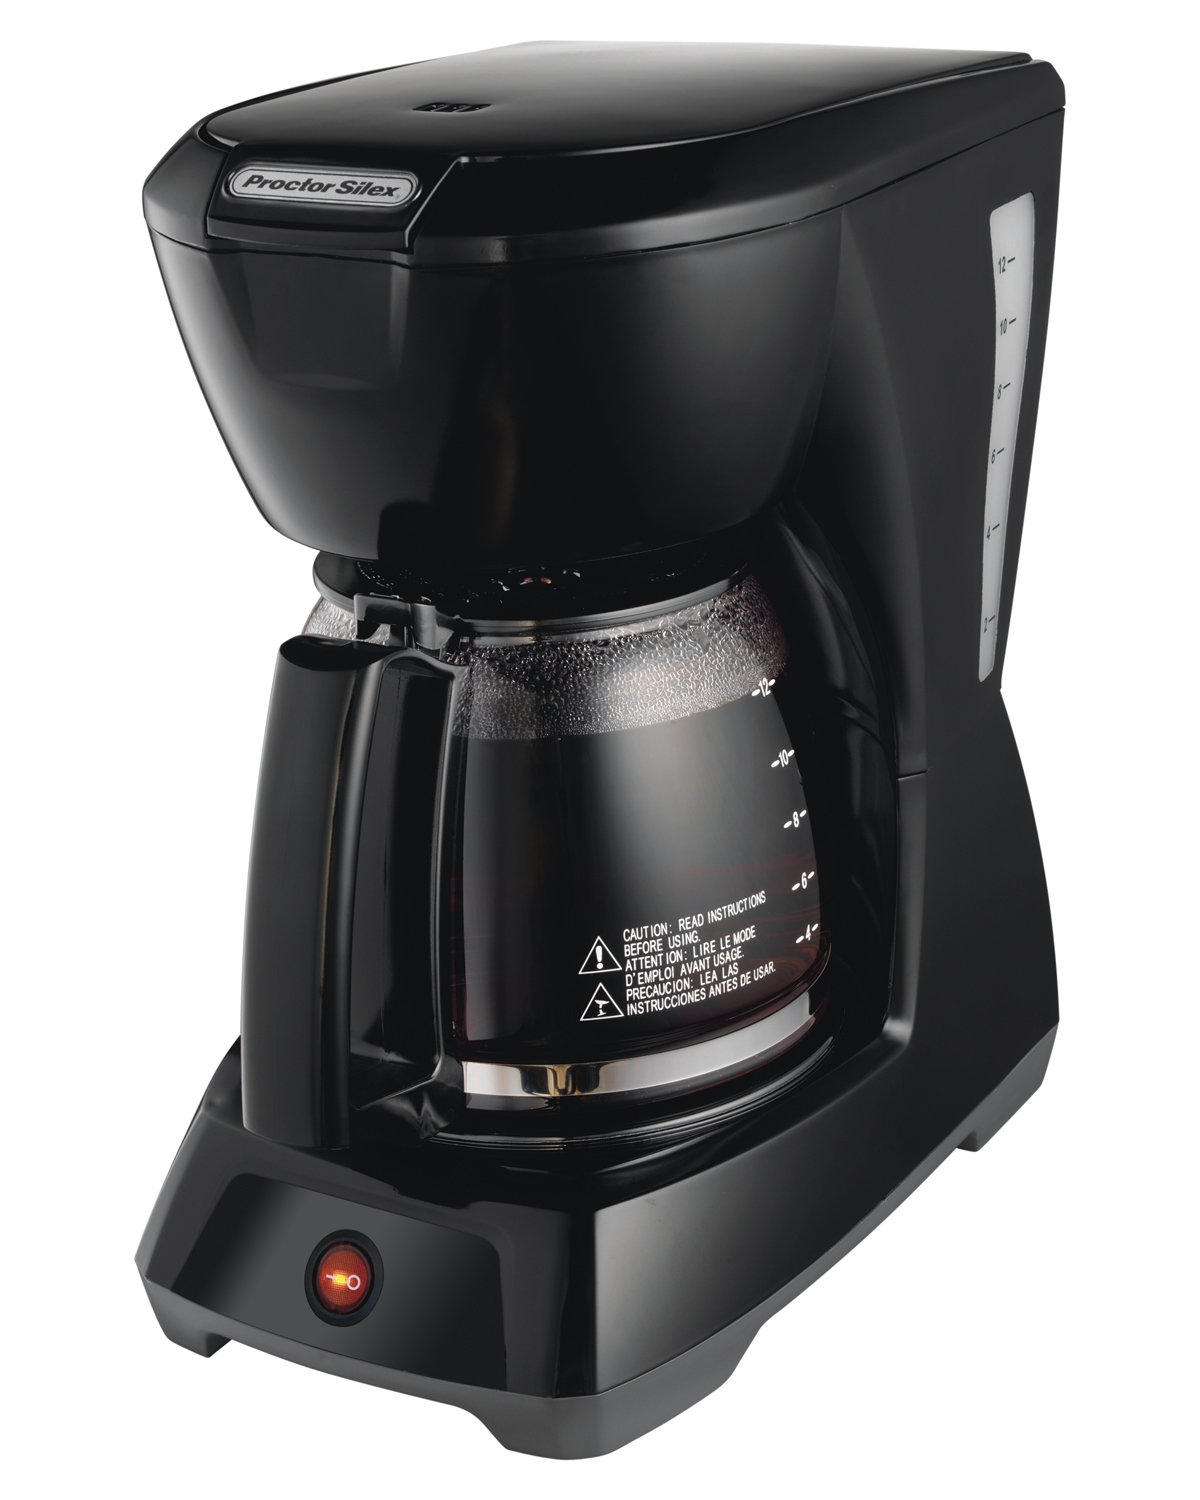 Black amp decker 12 cup coffee maker free shipping on orders over 45 - Amazon Com Proctor Silex 12 Cup Coffee Maker 43602 Drip Coffeemakers Kitchen Dining